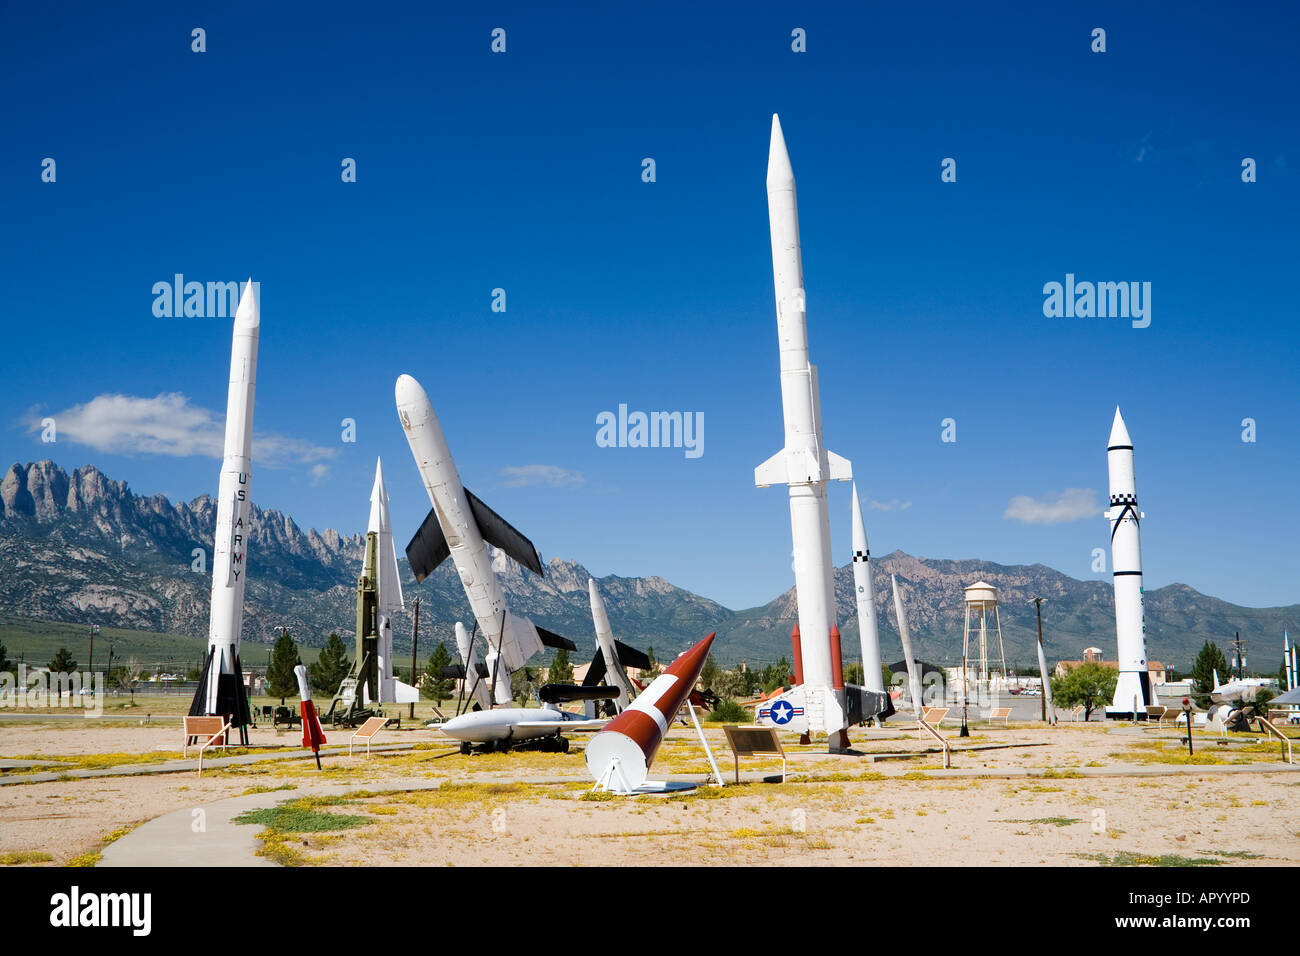 Open air museum showing missiles, nuclear and conventional weapons at White Sands Missile Range, New Mexico, USA - Stock Image